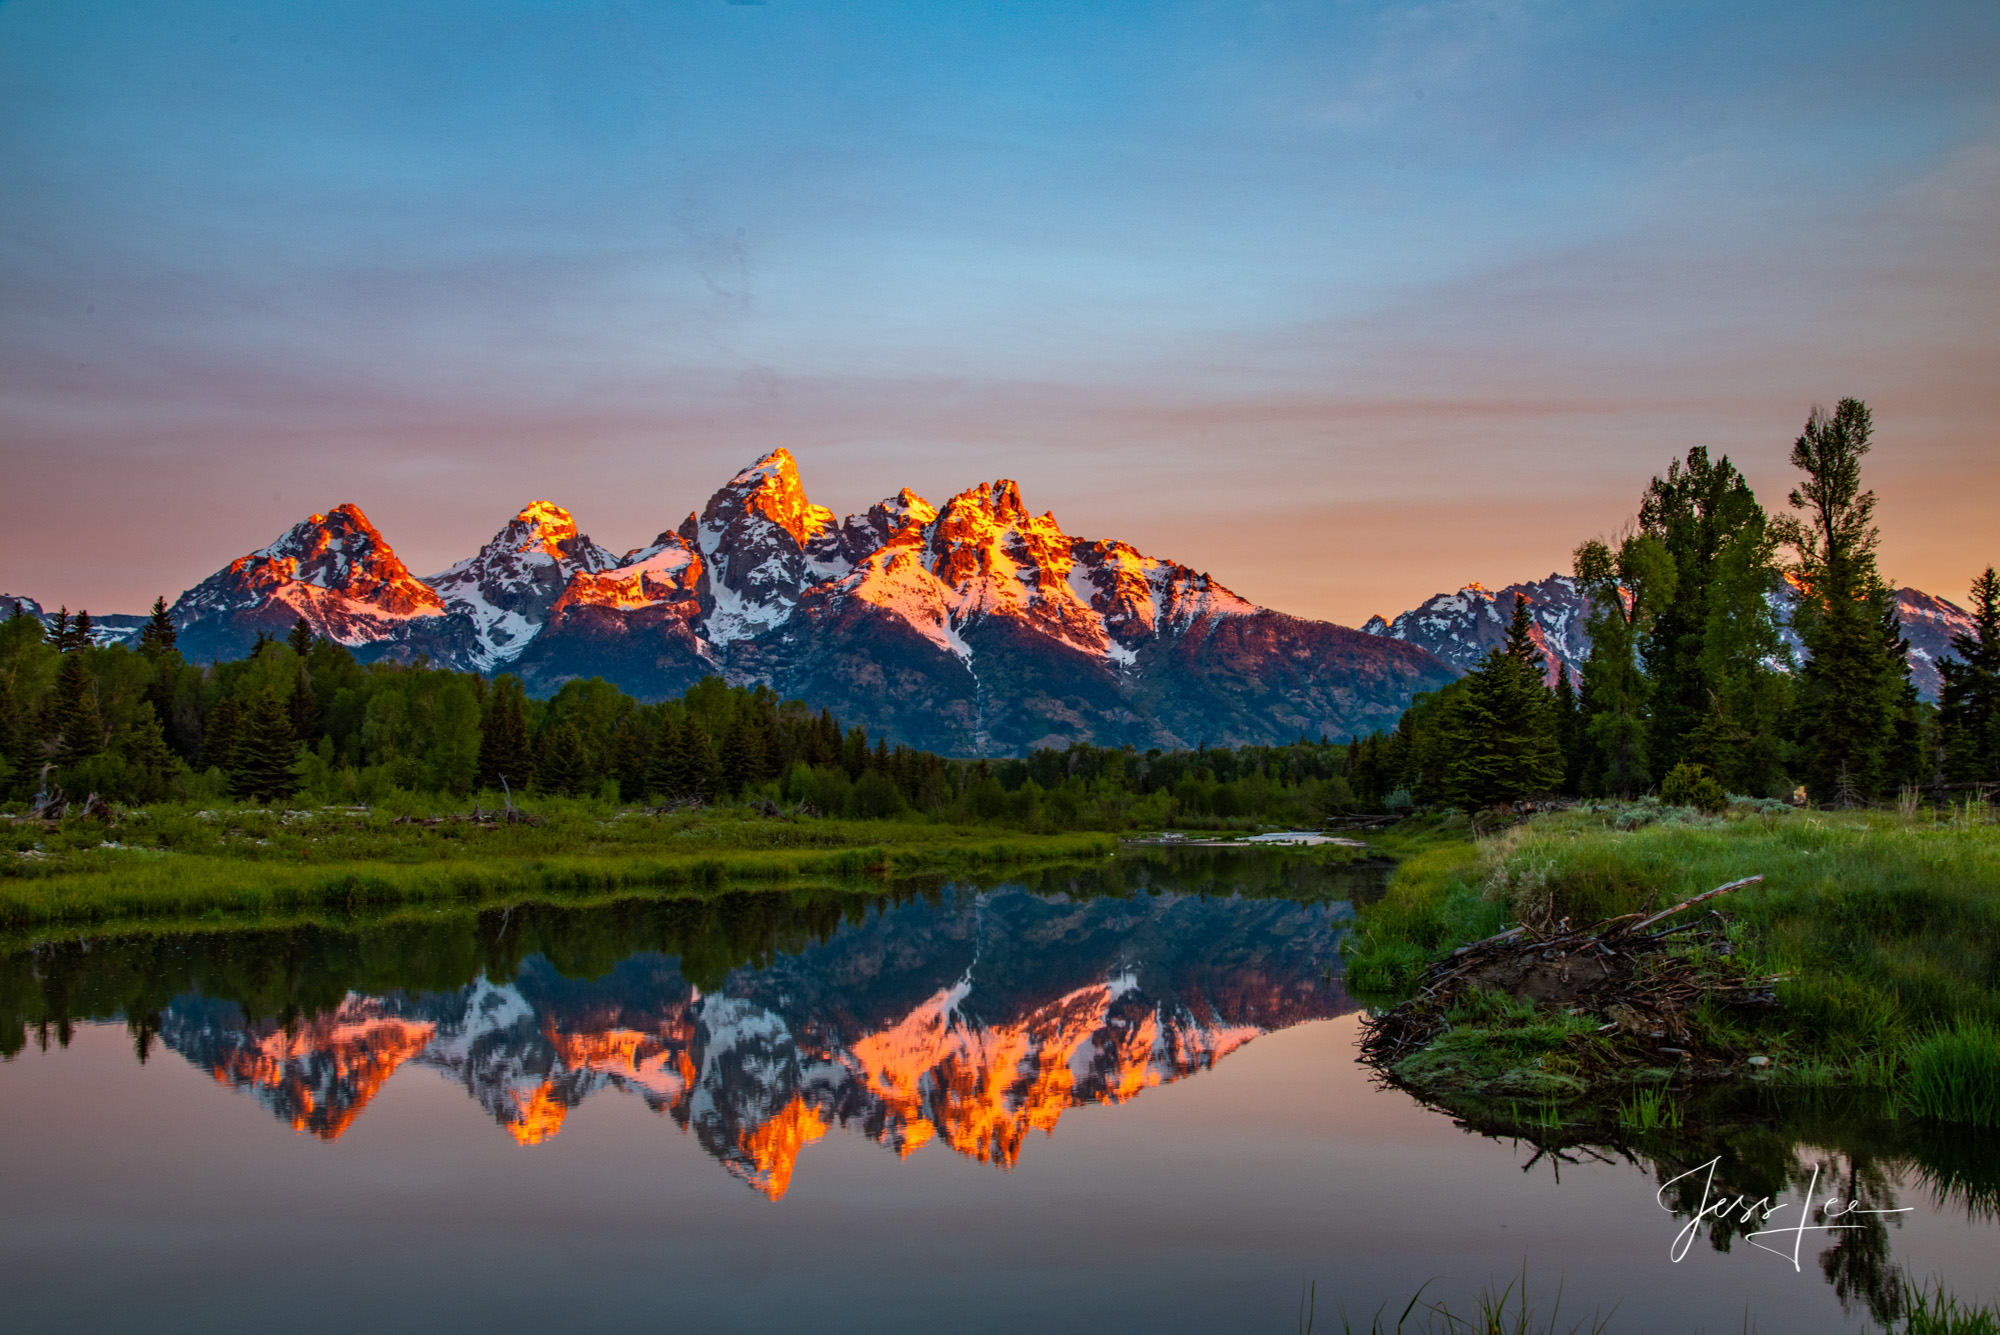 photo of Grand Tetons in Wyoming, National Park, wilderness, nature photography, landscape prints, reflection, water, lake, sunset, sunrise, bears, wolves, mountains, wildlife, snow, trees, cowboy, we, photo